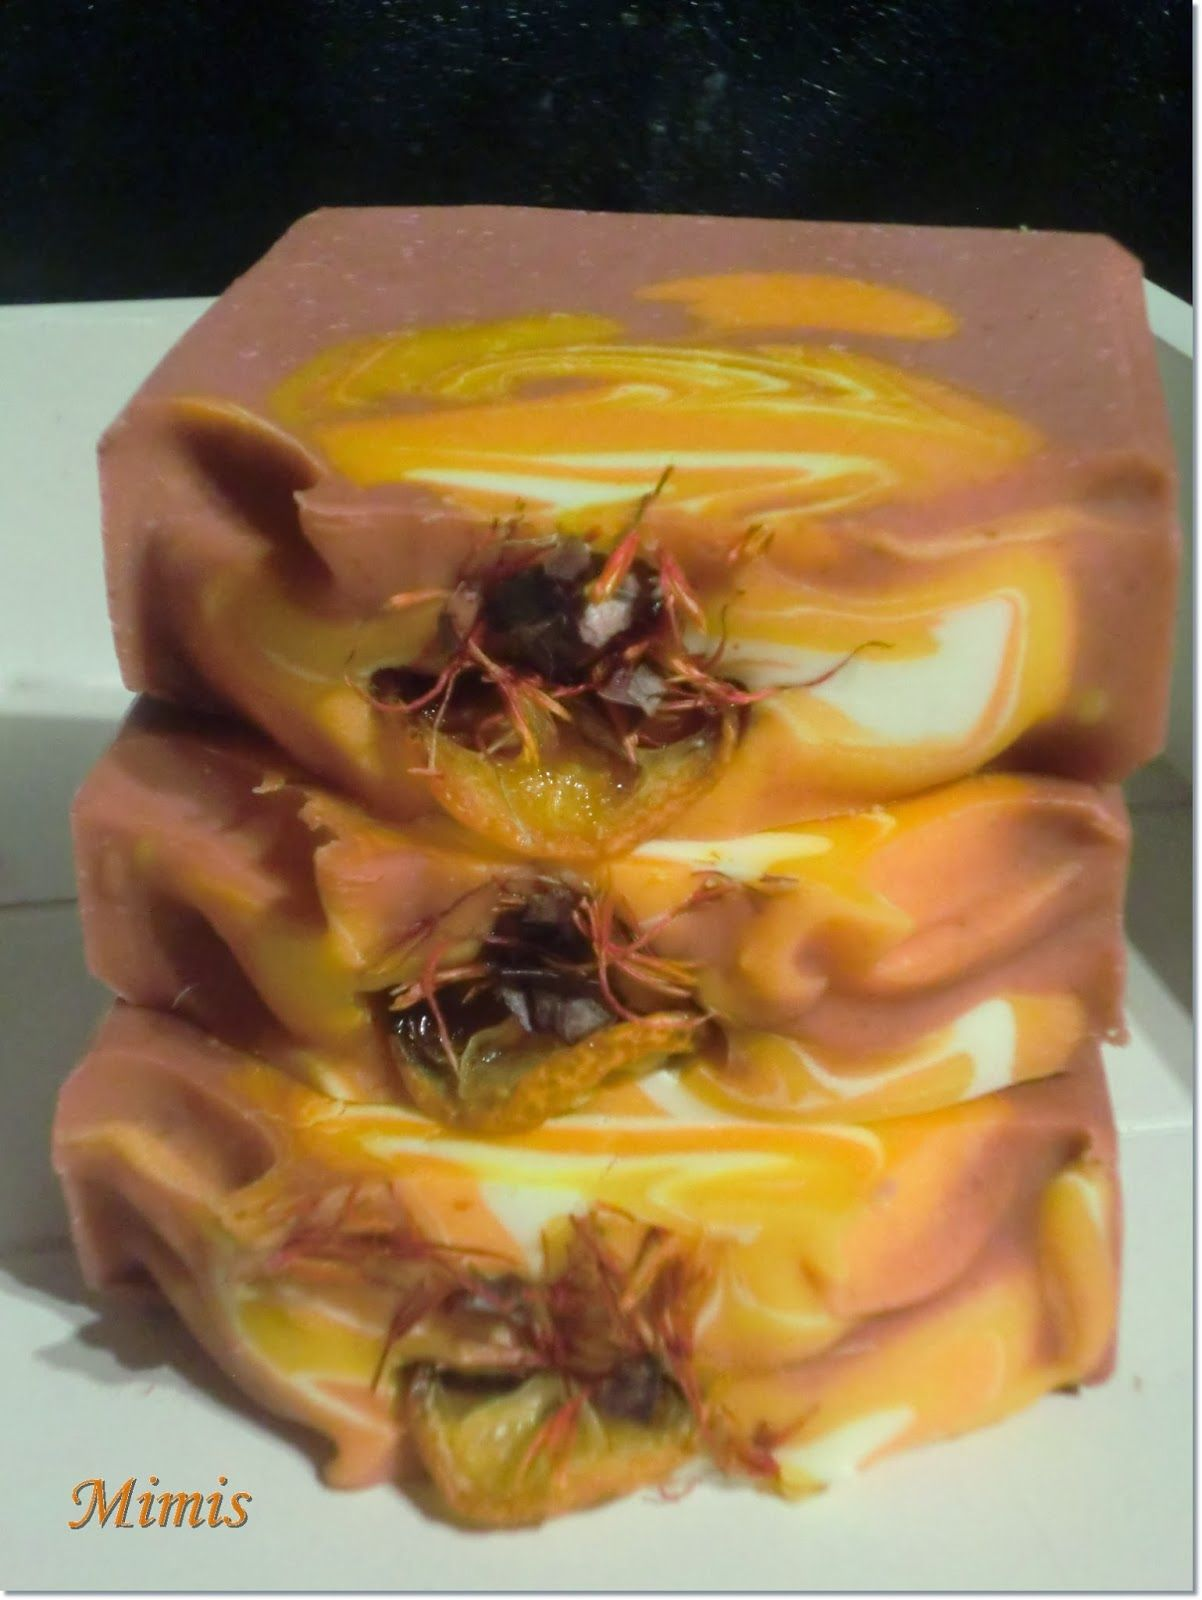 Handemade cold process soap